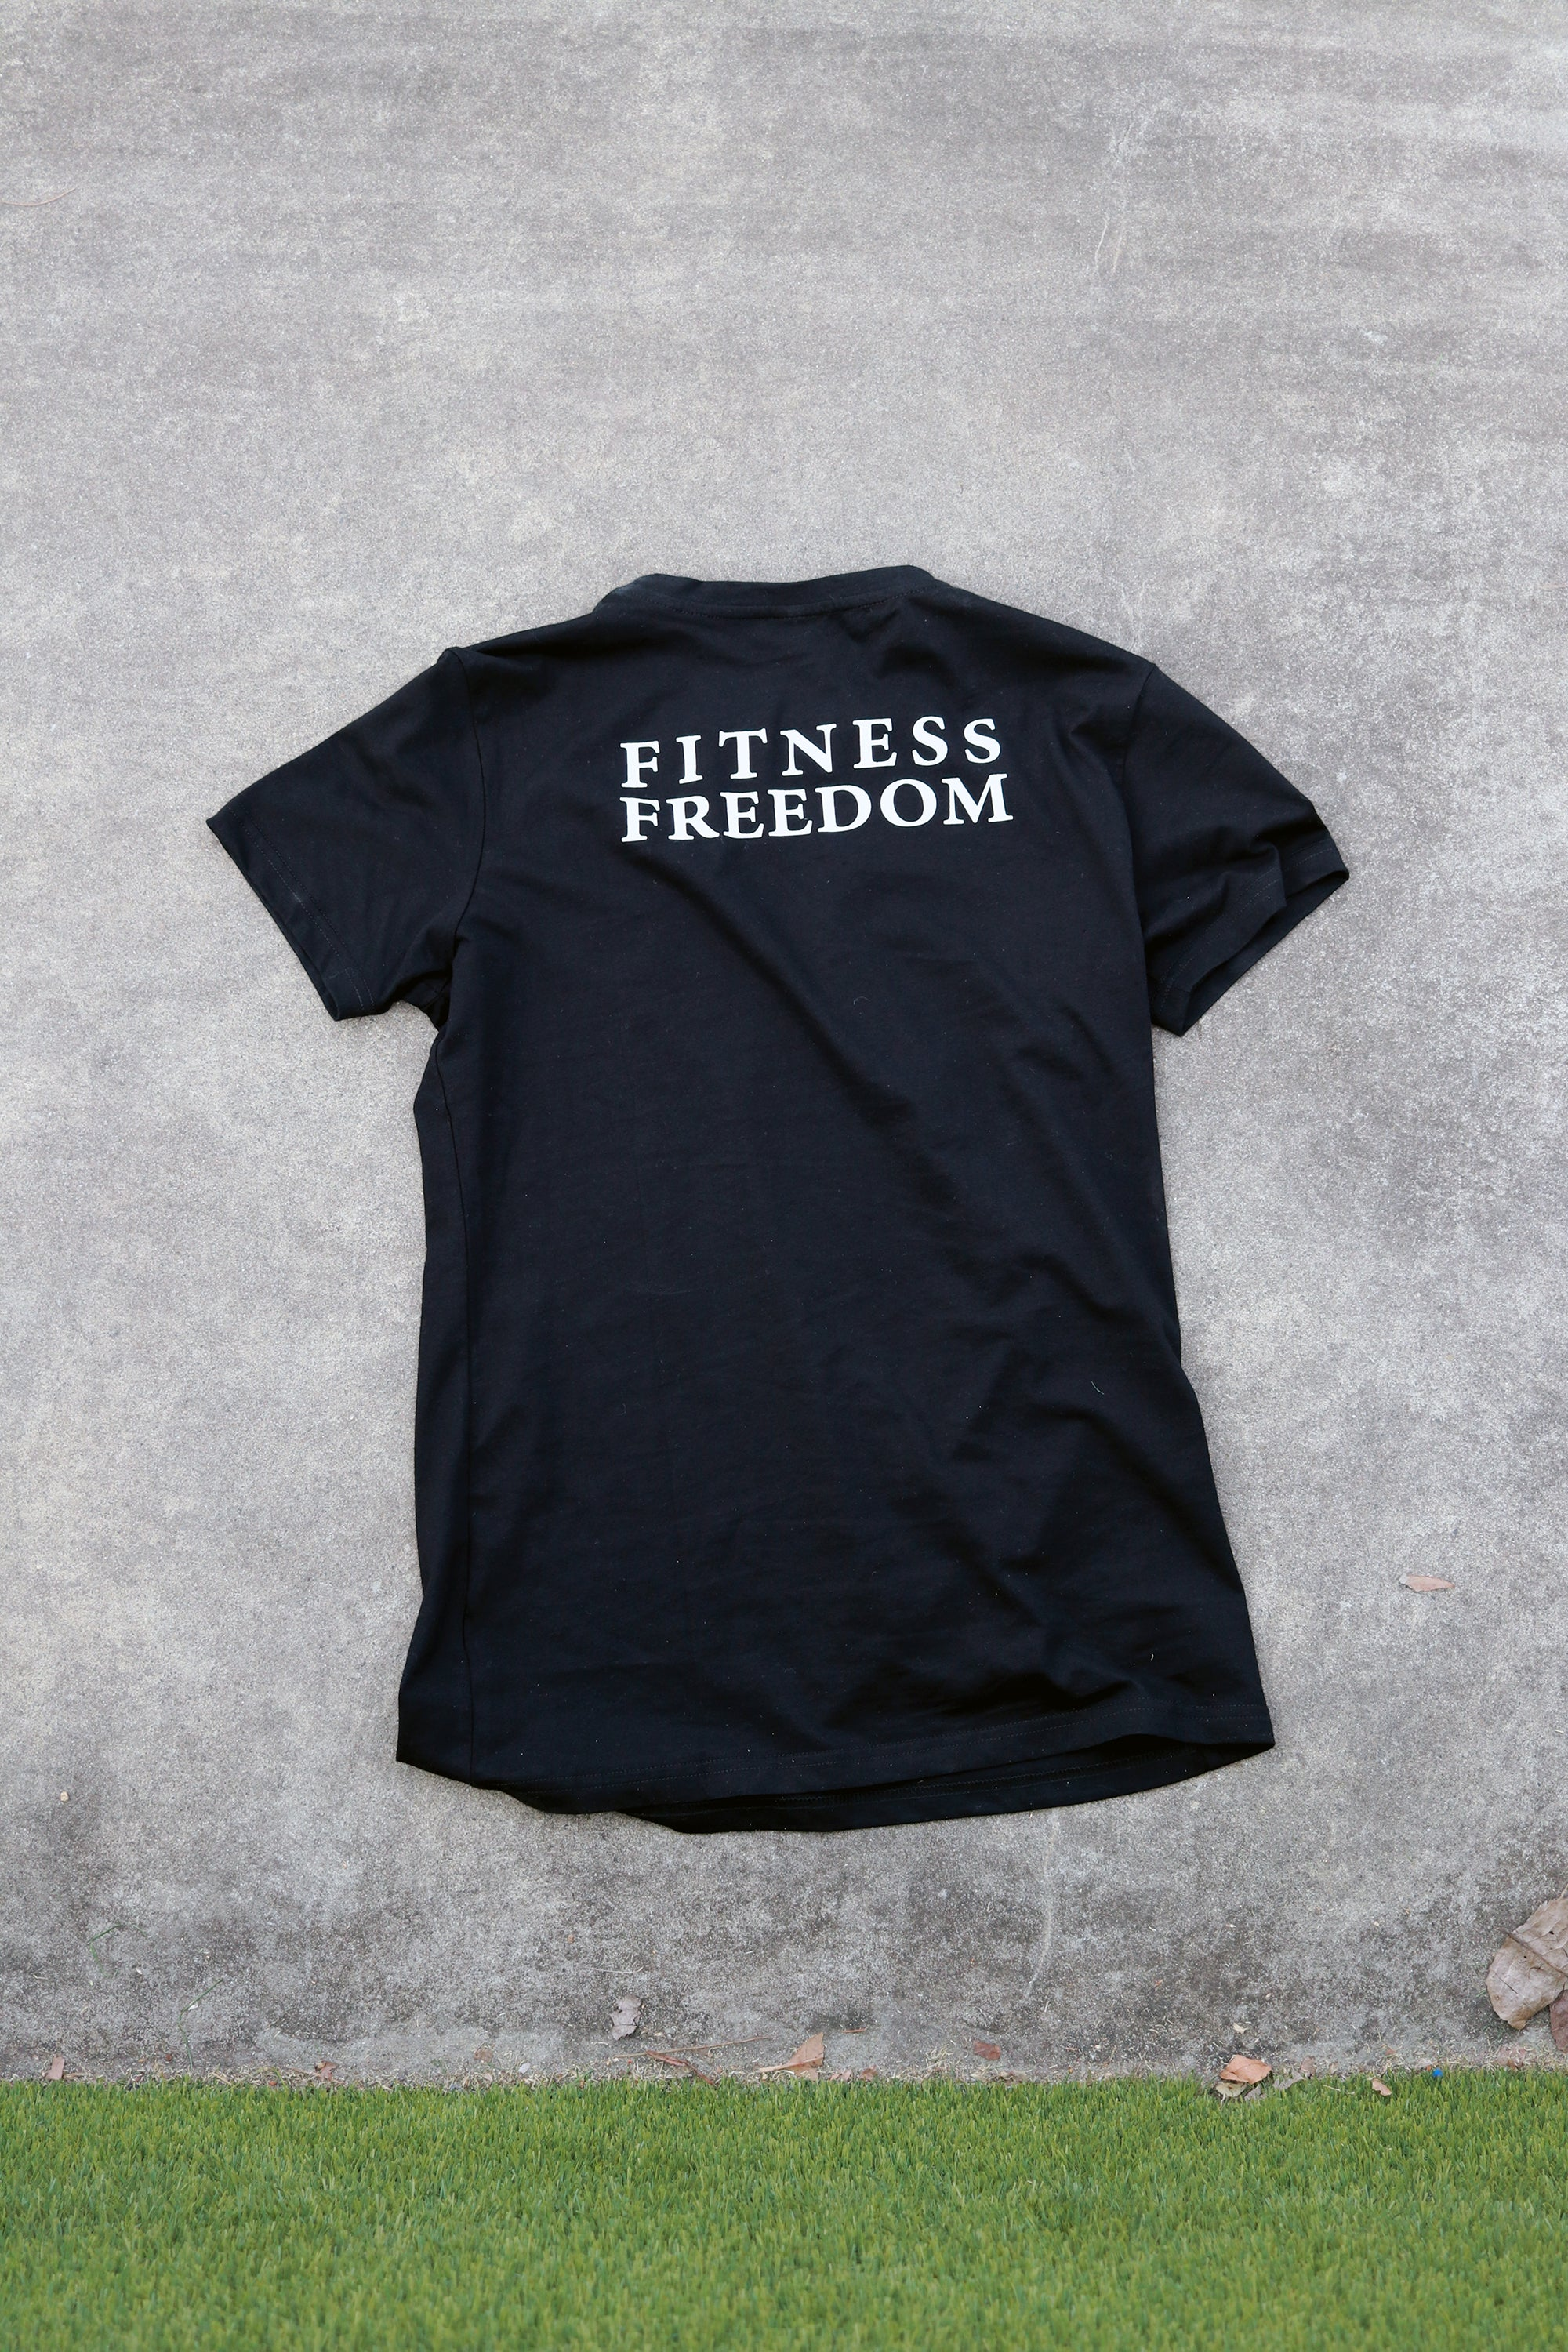 Fitness t-shirt in black with white logo, 100% cotton breathable natural fabric